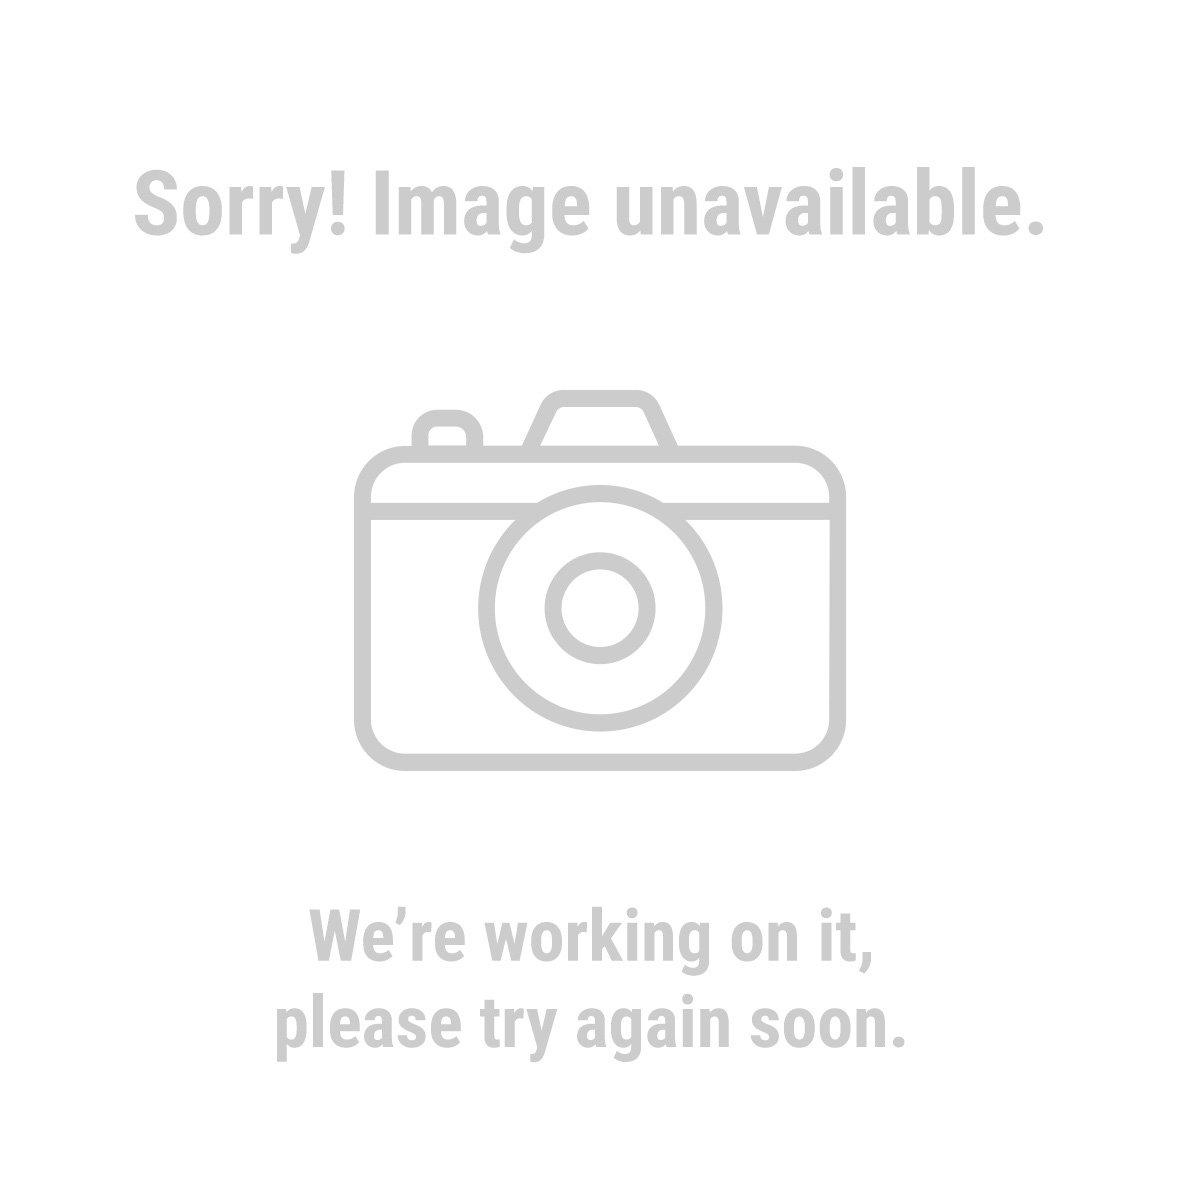 Pacific Hydrostar 68389 92 GPH Miniature Submersible Fountain Pump